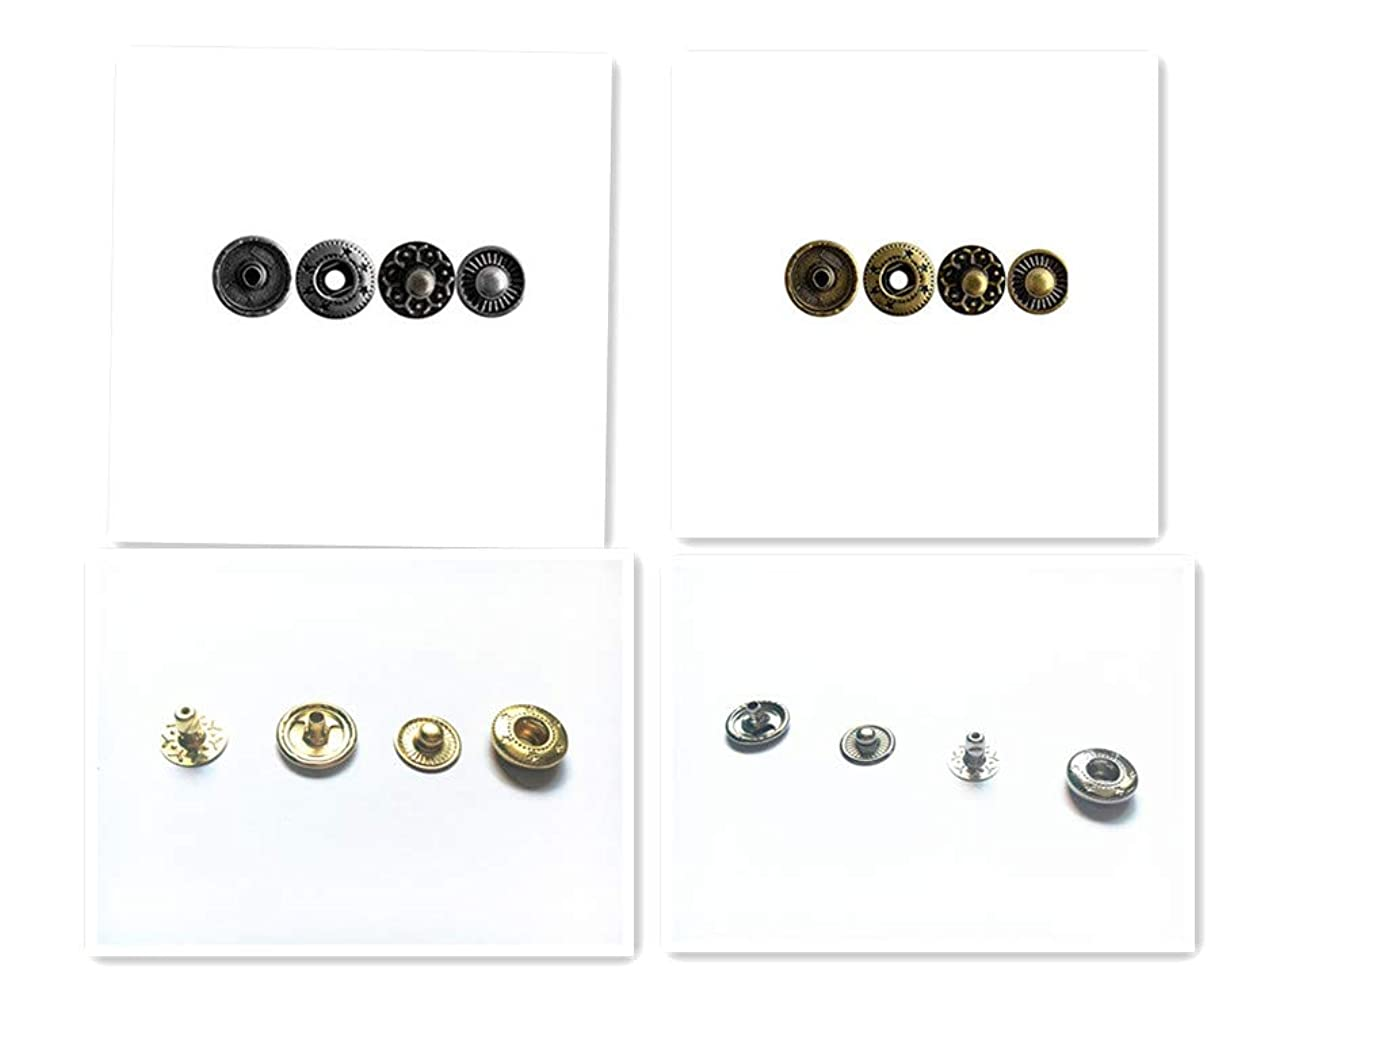 100 Sets 1/2 Inch Metal Snap Fasteners Leather Snaps Button Press Studs (4 Colors, 12.5mm)